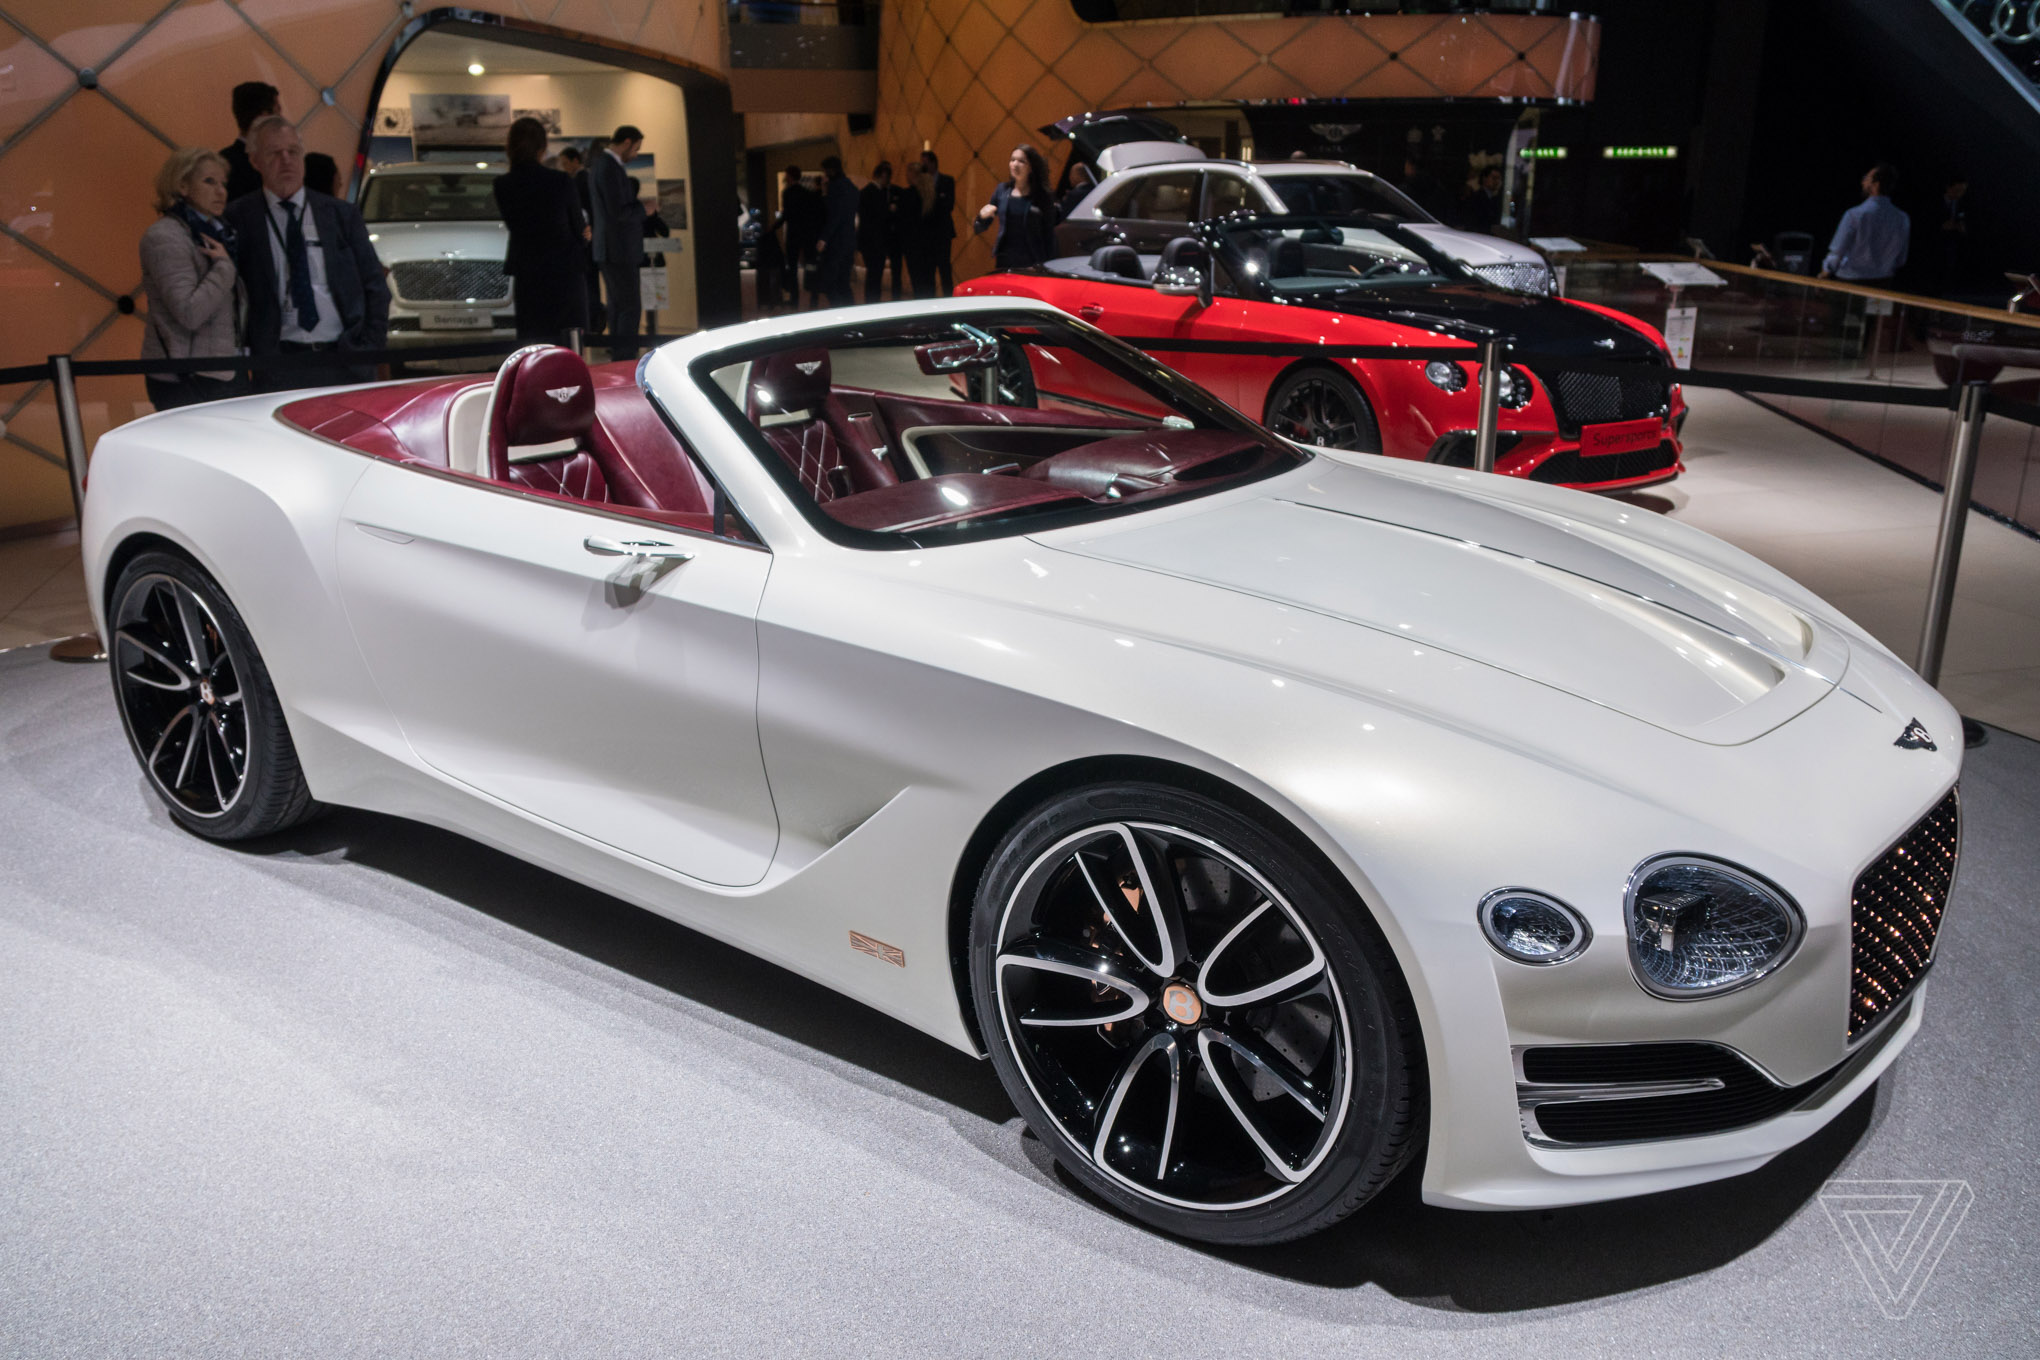 bentley challenges tesla s idea of electric luxury with a gorgeous new concept car the verge. Black Bedroom Furniture Sets. Home Design Ideas